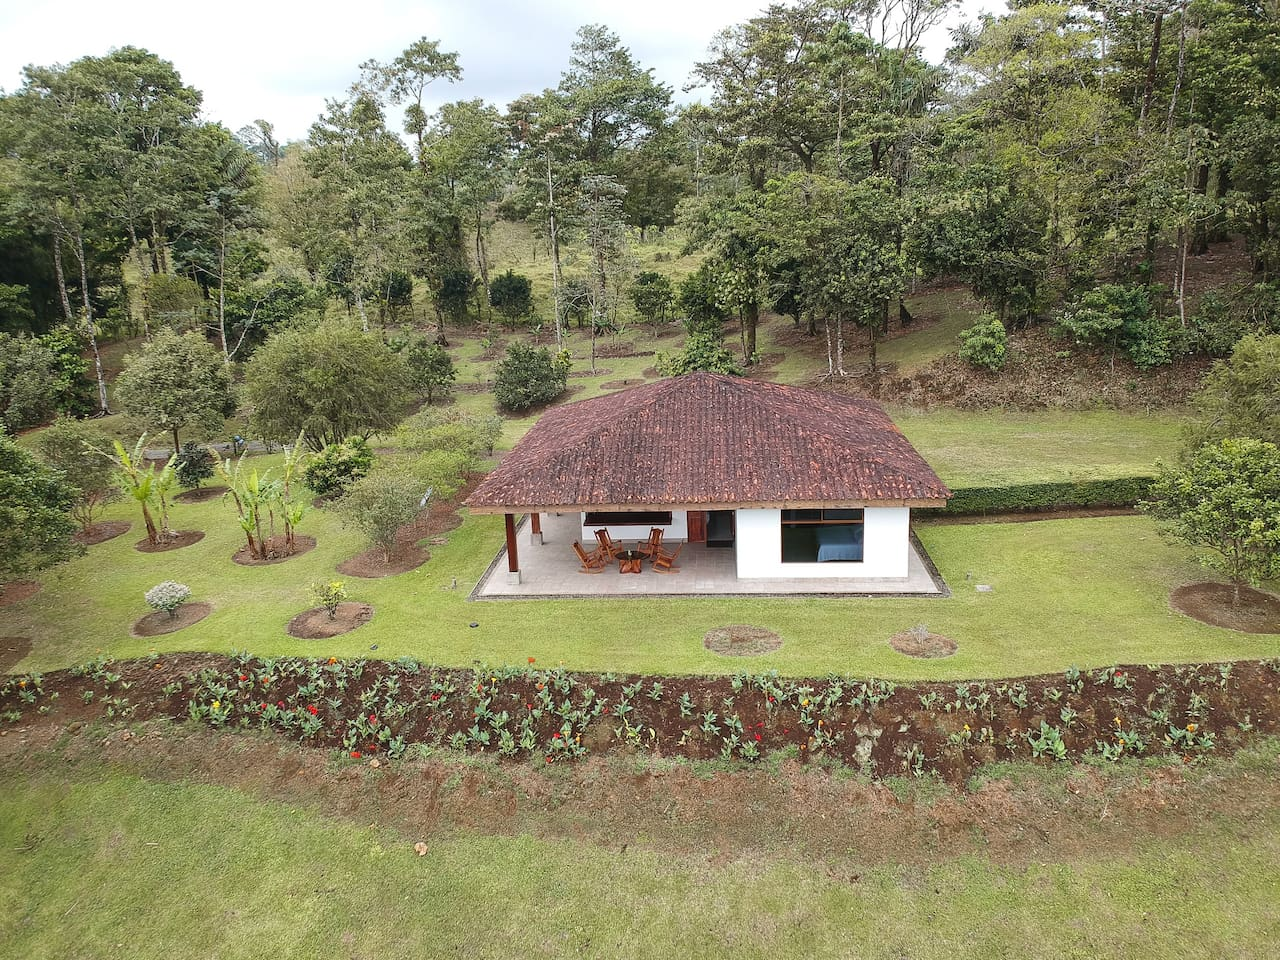 A home in the middle of green beautiful trees and well take care gardens. I welcome you to enjoy the beauty of a home away from the city but yet very close to Tenorio Volcano National Park.  Here you can find a panoramic view of the house.